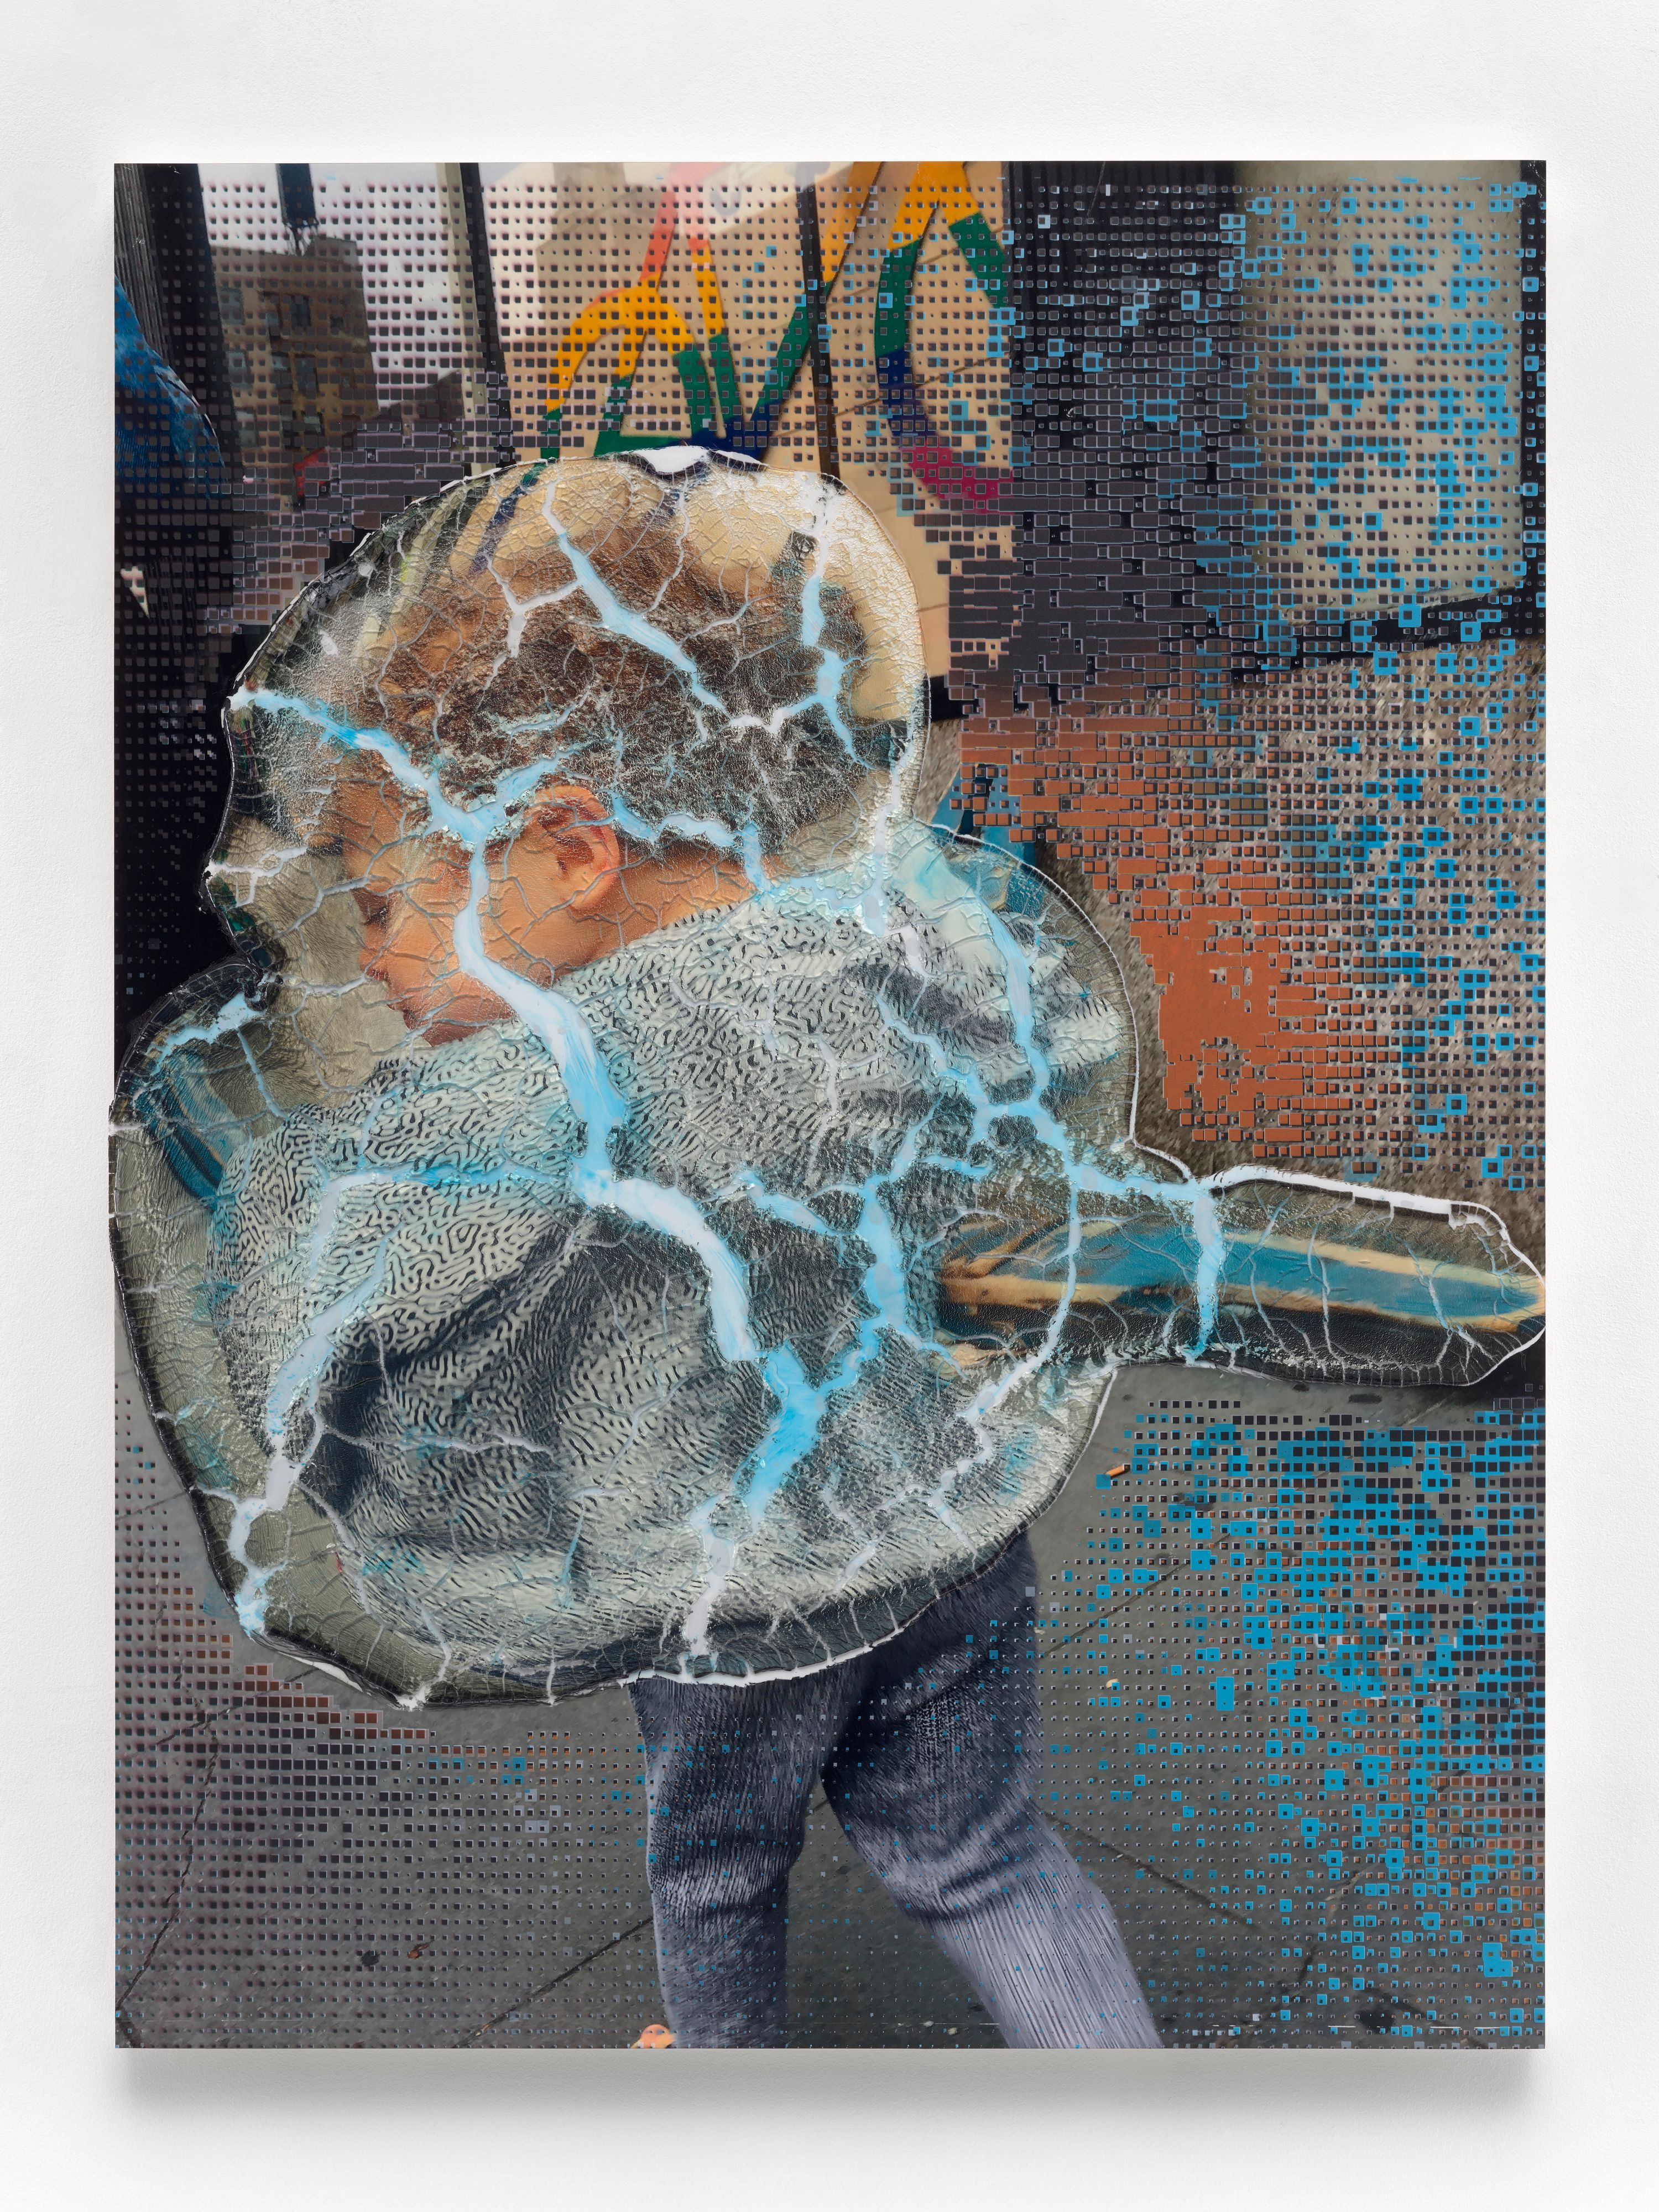 Seth Price, Social Space: Rainbow Signal, Cracked Police Barrier, Boy with Virus Pattern, 2019 Acrylic polymer, acrylic paint, inkjet on plastic, UV-cured inkjet, wood, metal, 55.25 x 42 inches. Courtesy of the artist and Petzel, New York.